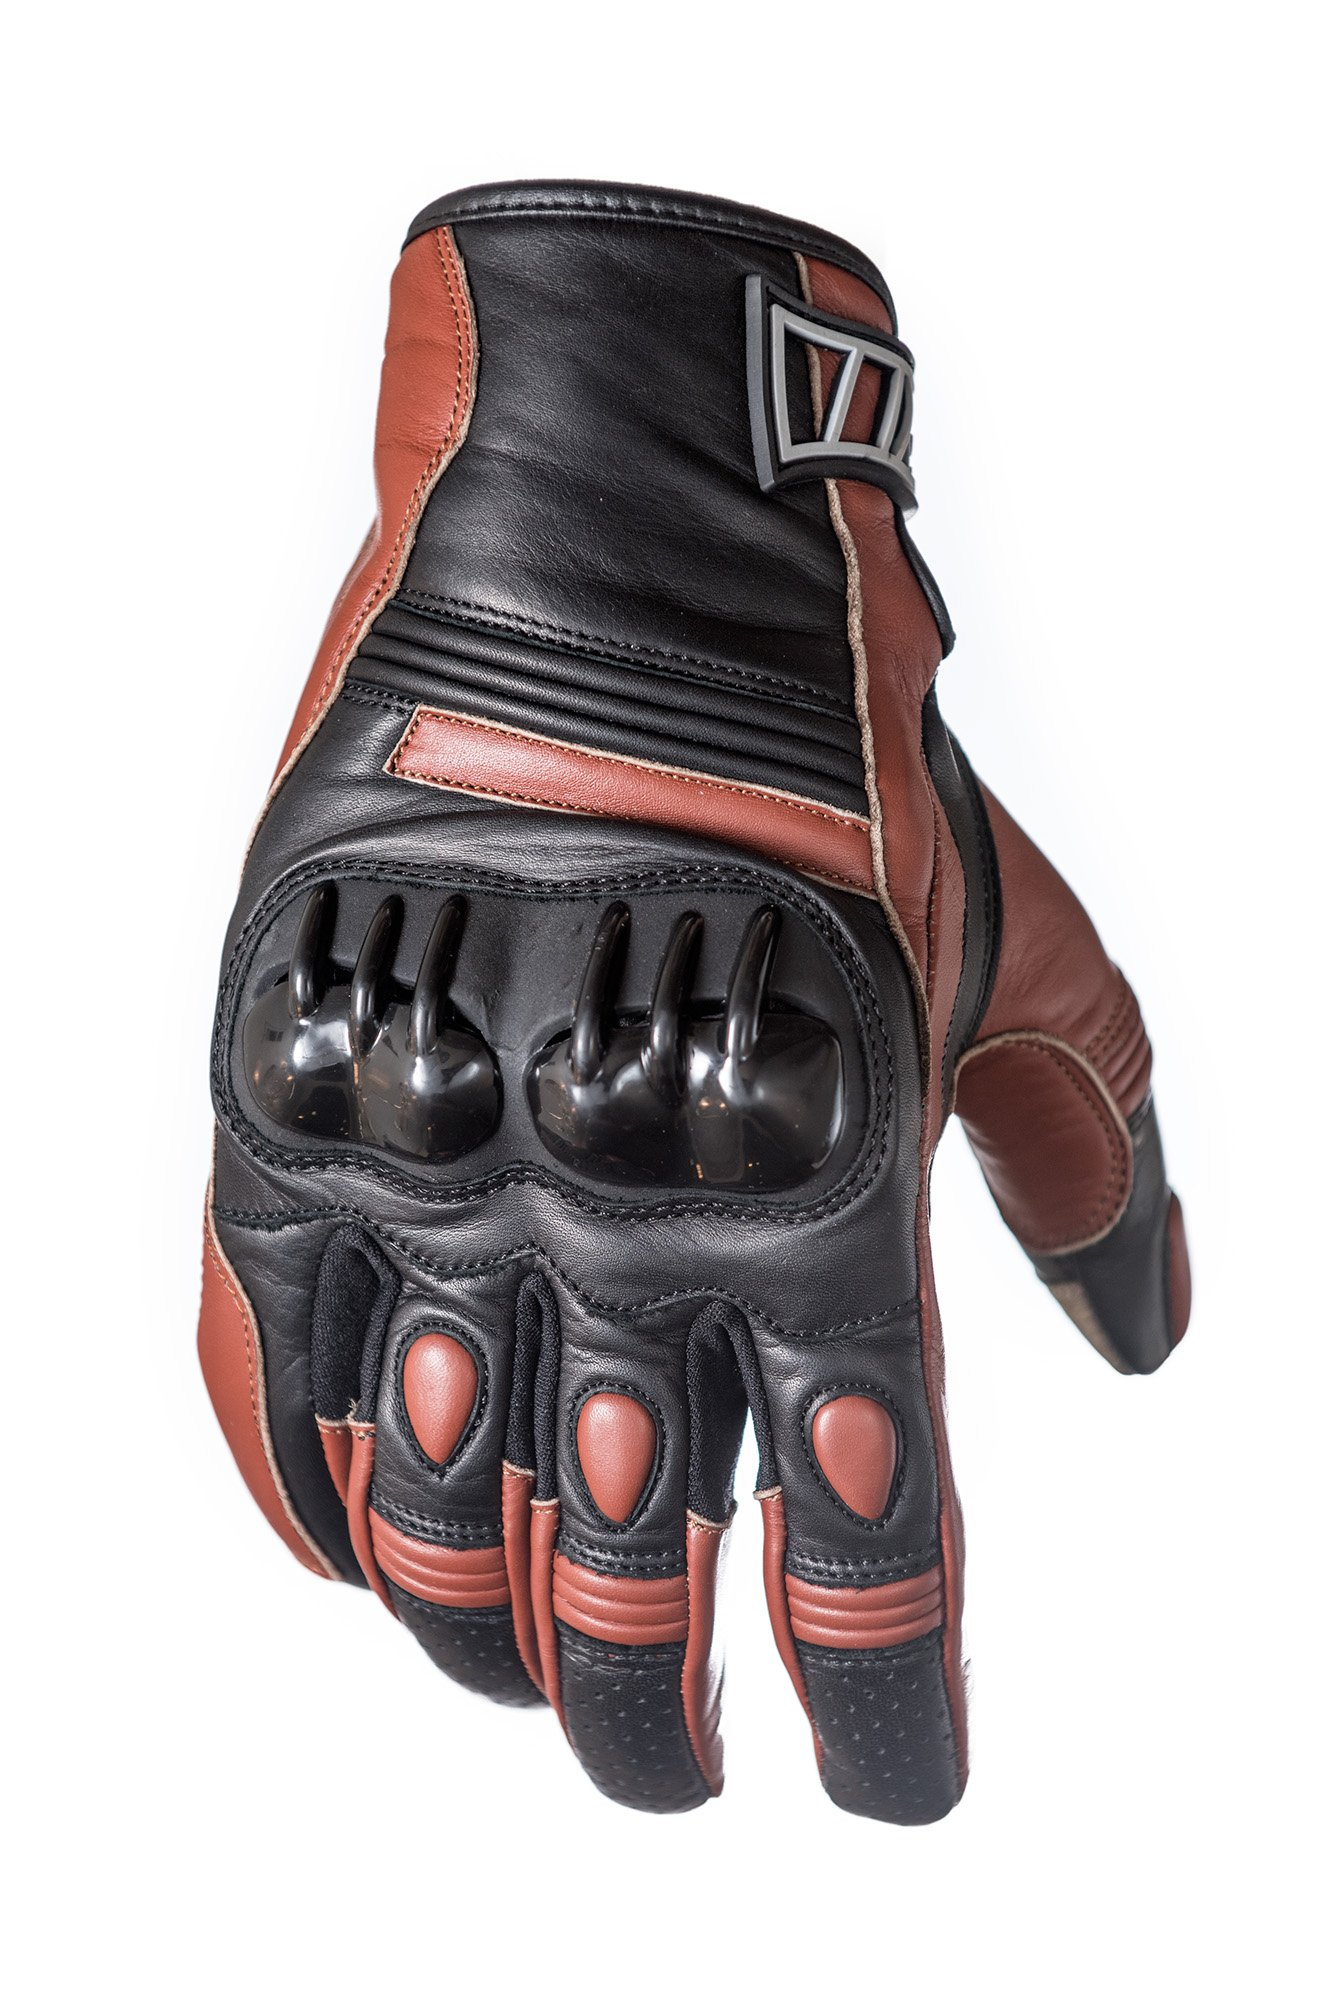 Protect the King Hawkins Premium Leather Motorcycle Sport Biker Gloves (Large)